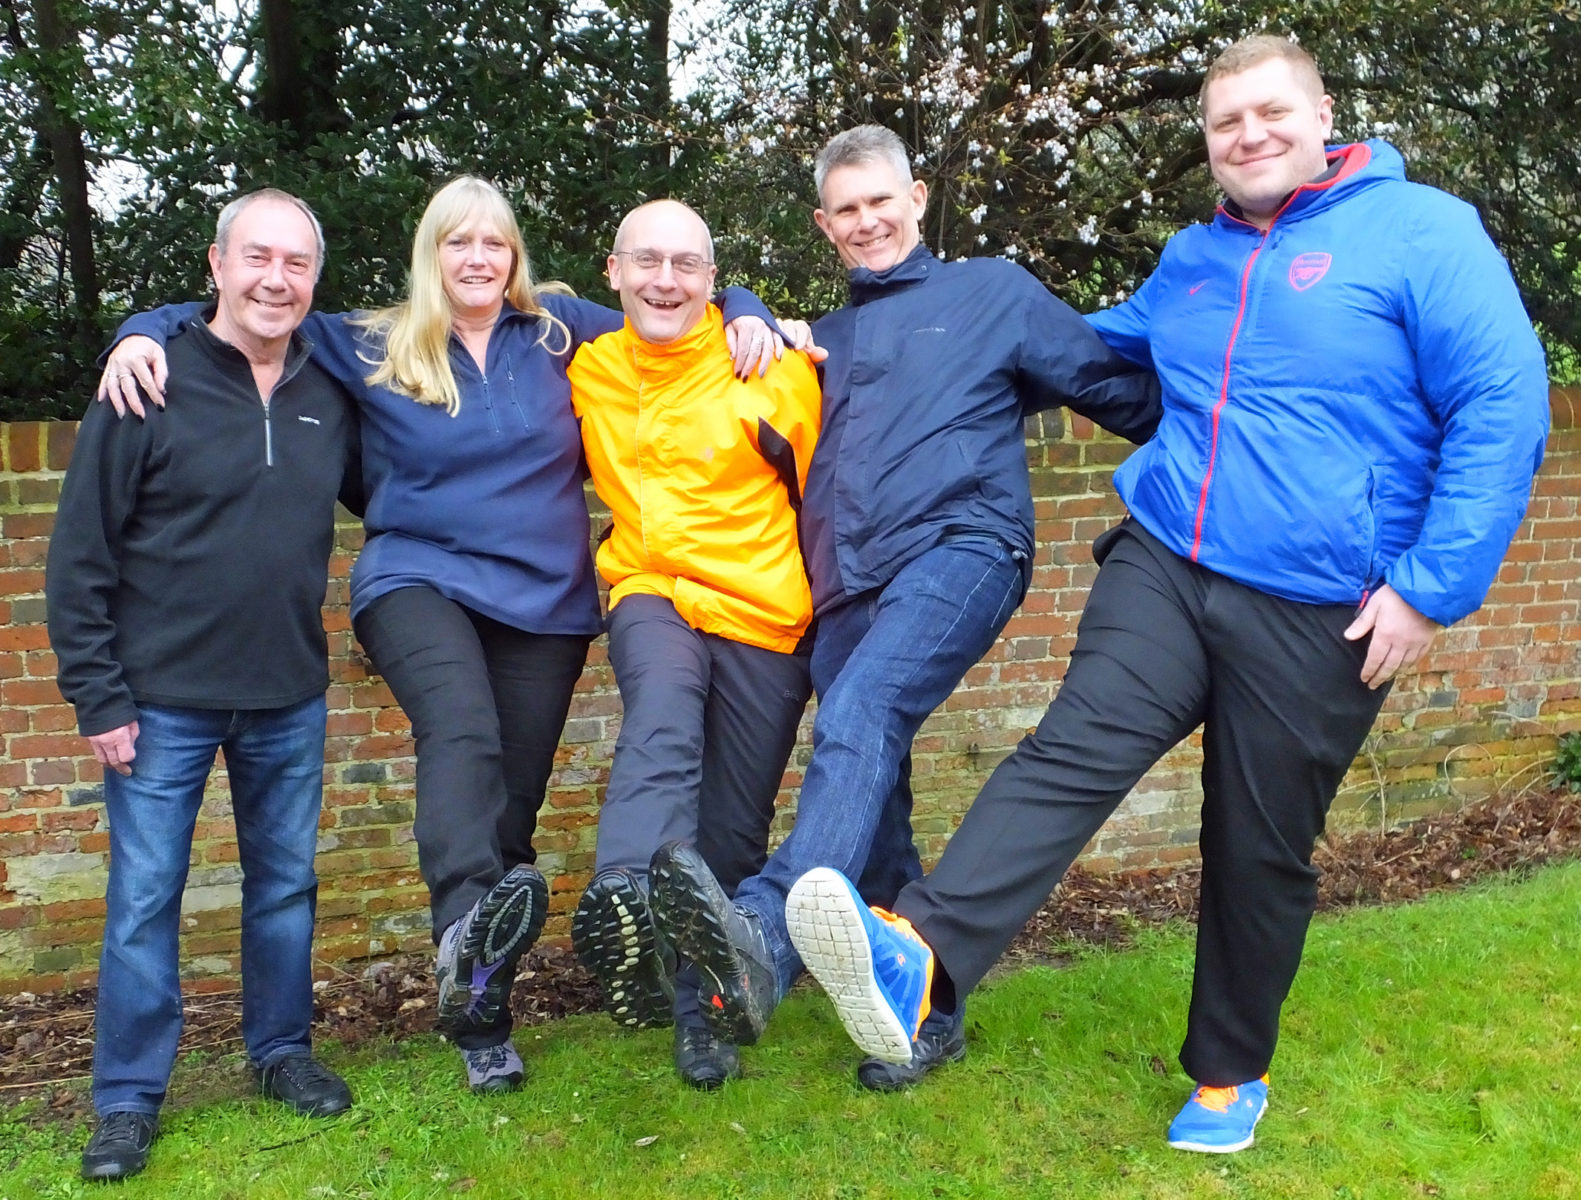 NIGHT HIKE: The Hampshire Chamber of Commerce Plod team, from left, Tony McKenzie, support driver, Eddie Bell, Mark Baulch, Richard Hall and David Kemshall